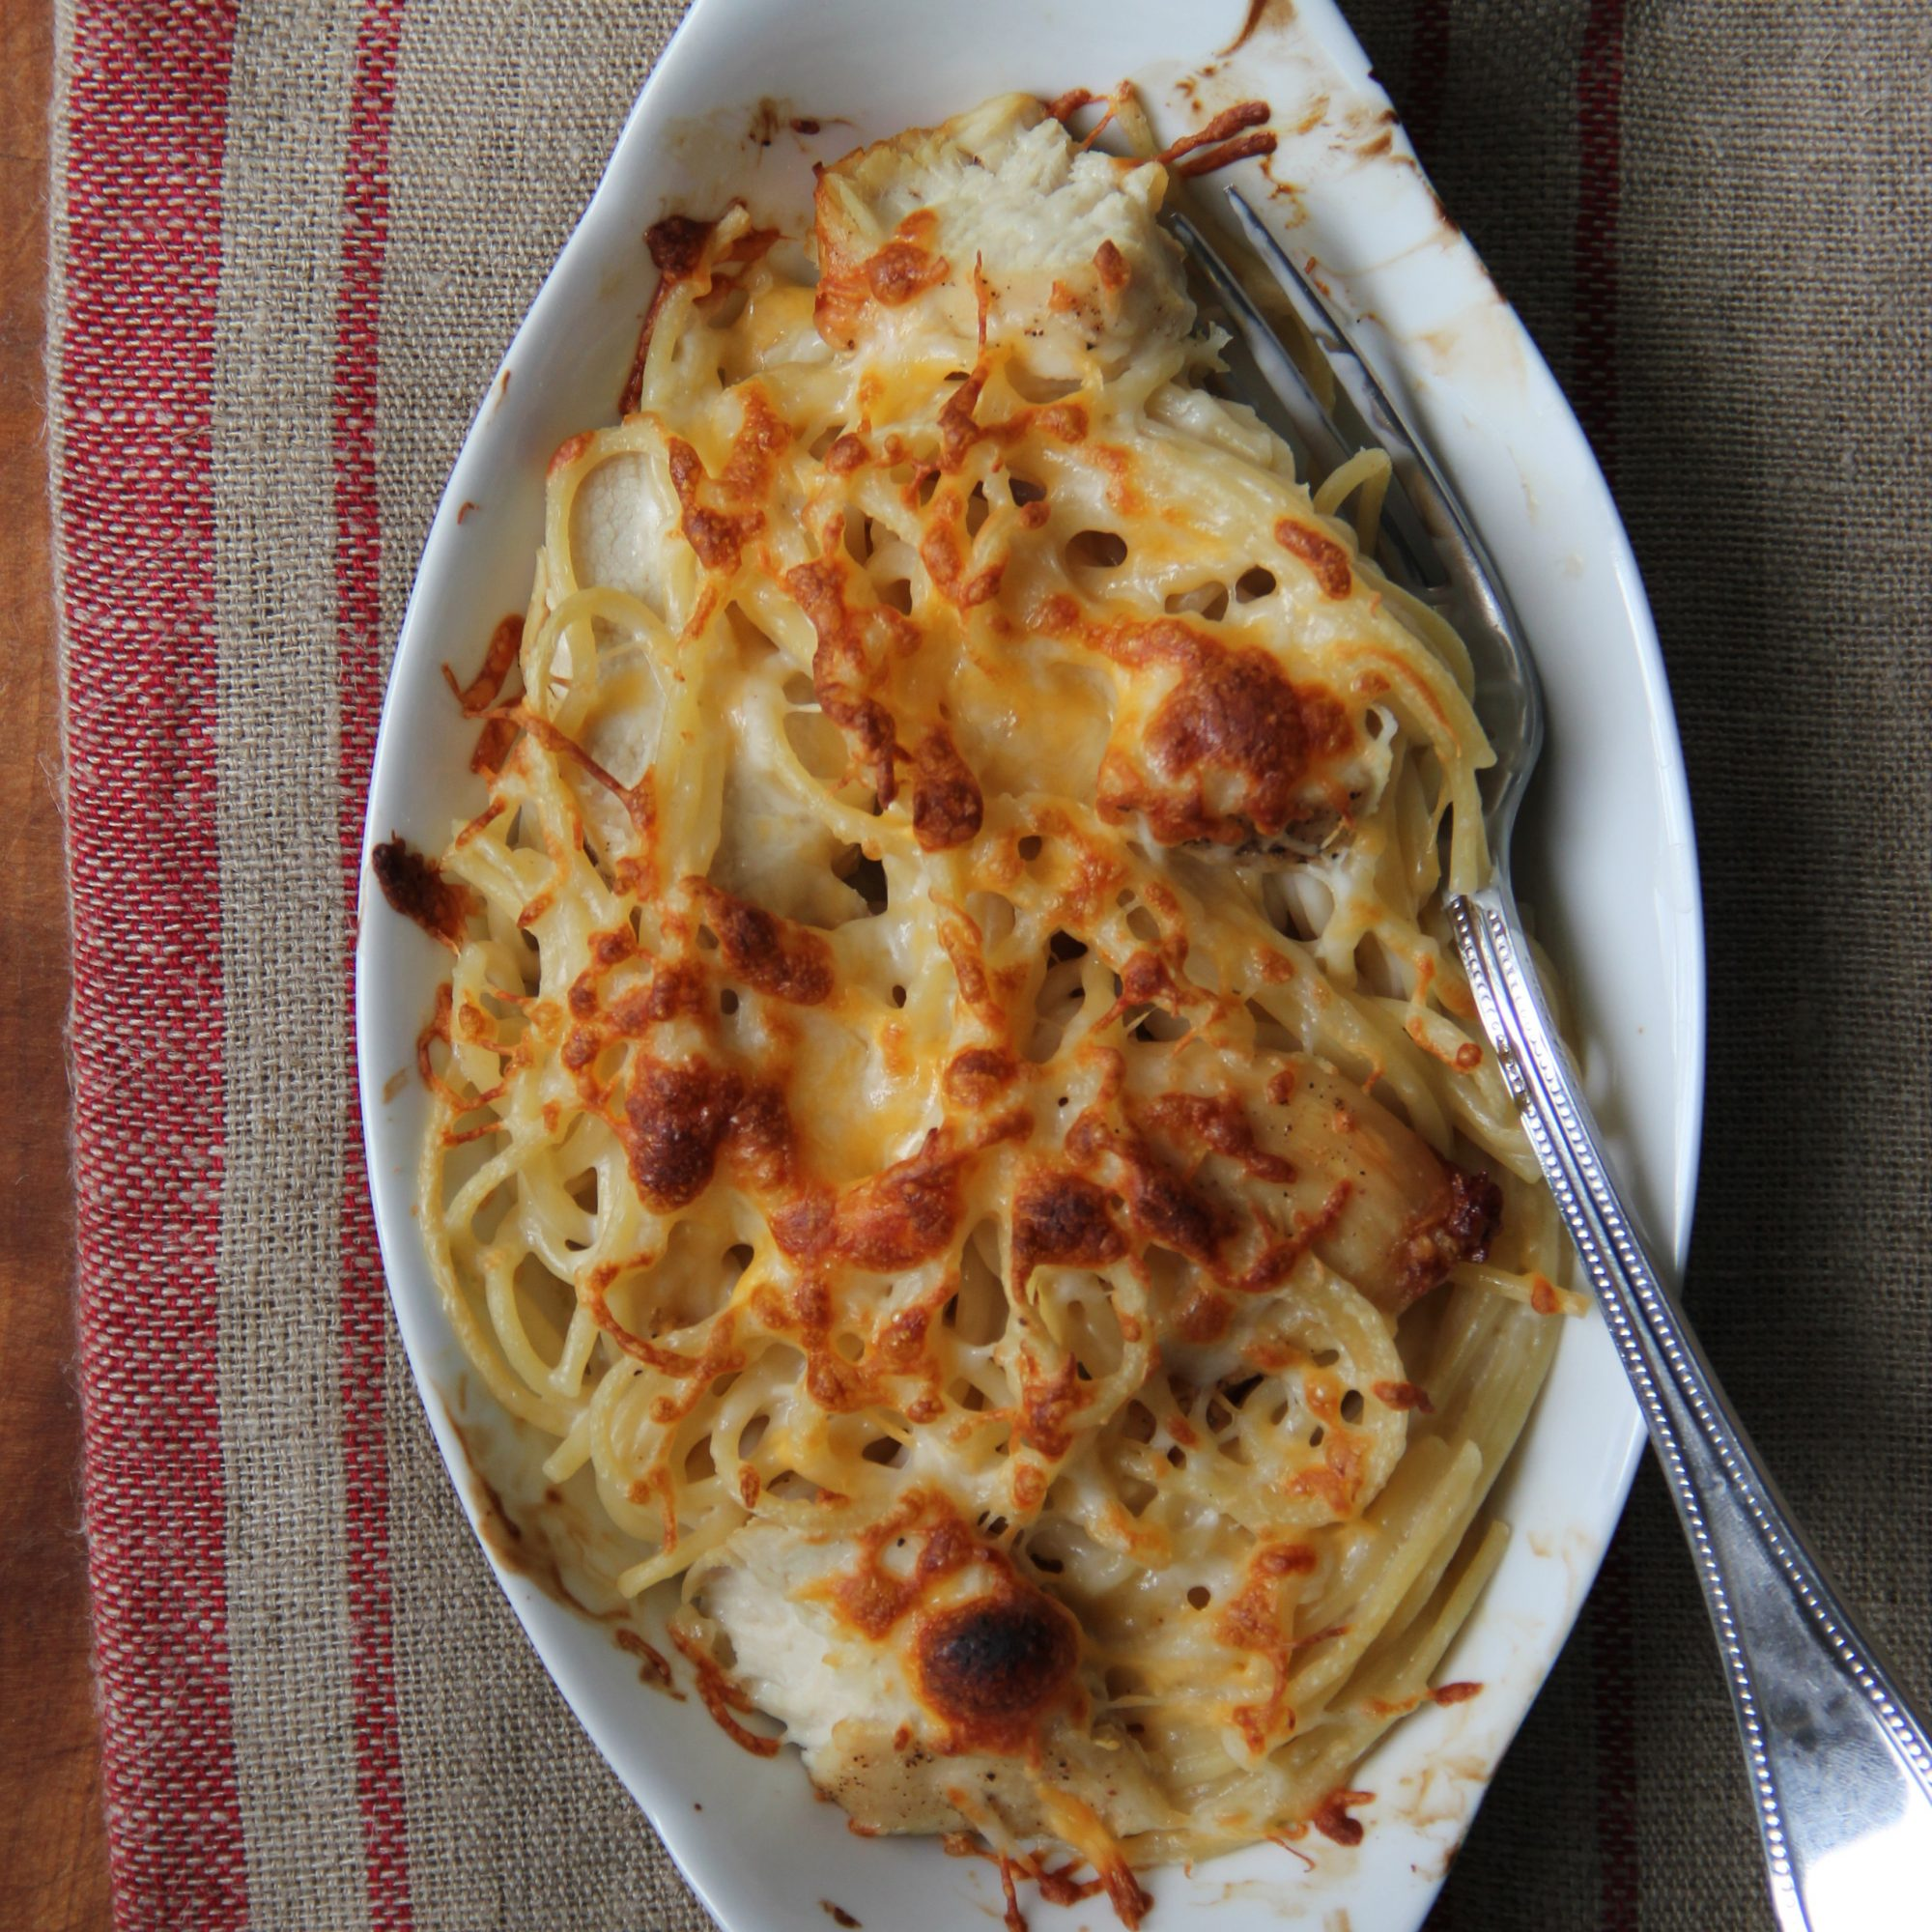 hd-201404-r-chicken-and-spaghetti-casserole.jpg